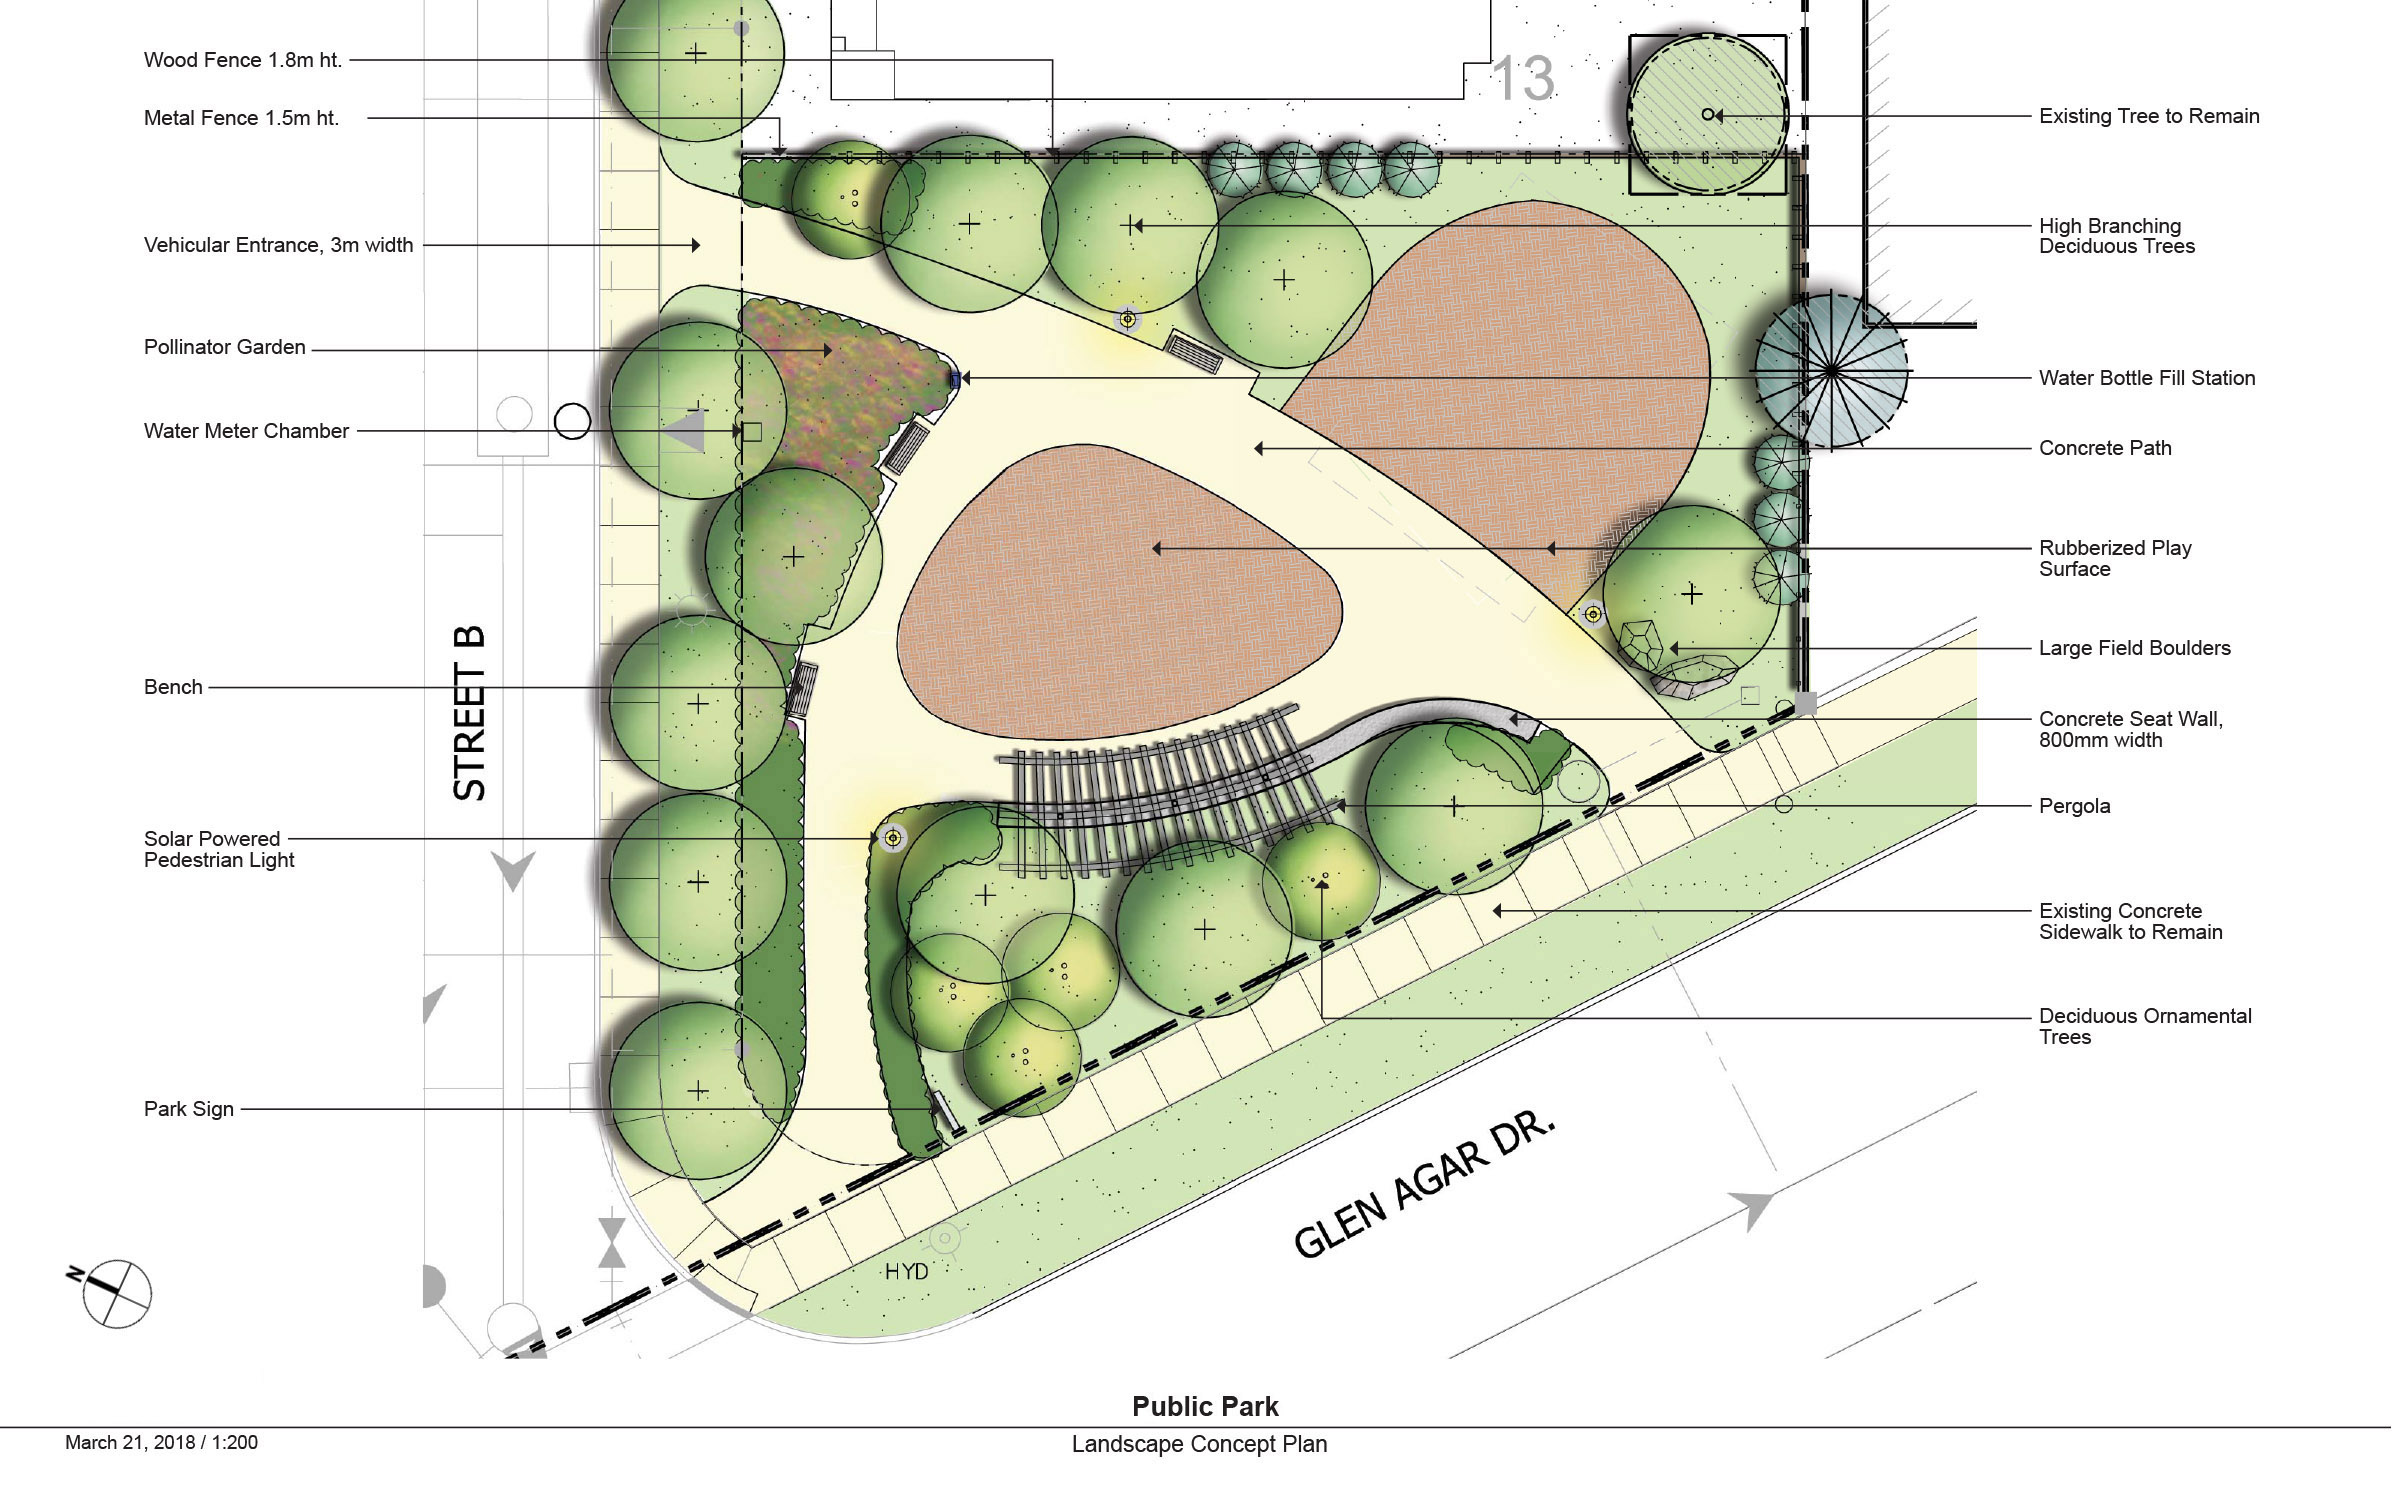 A landscape drawing showing the location of gardens, playground spaces, trees and other landscape features in the new park.